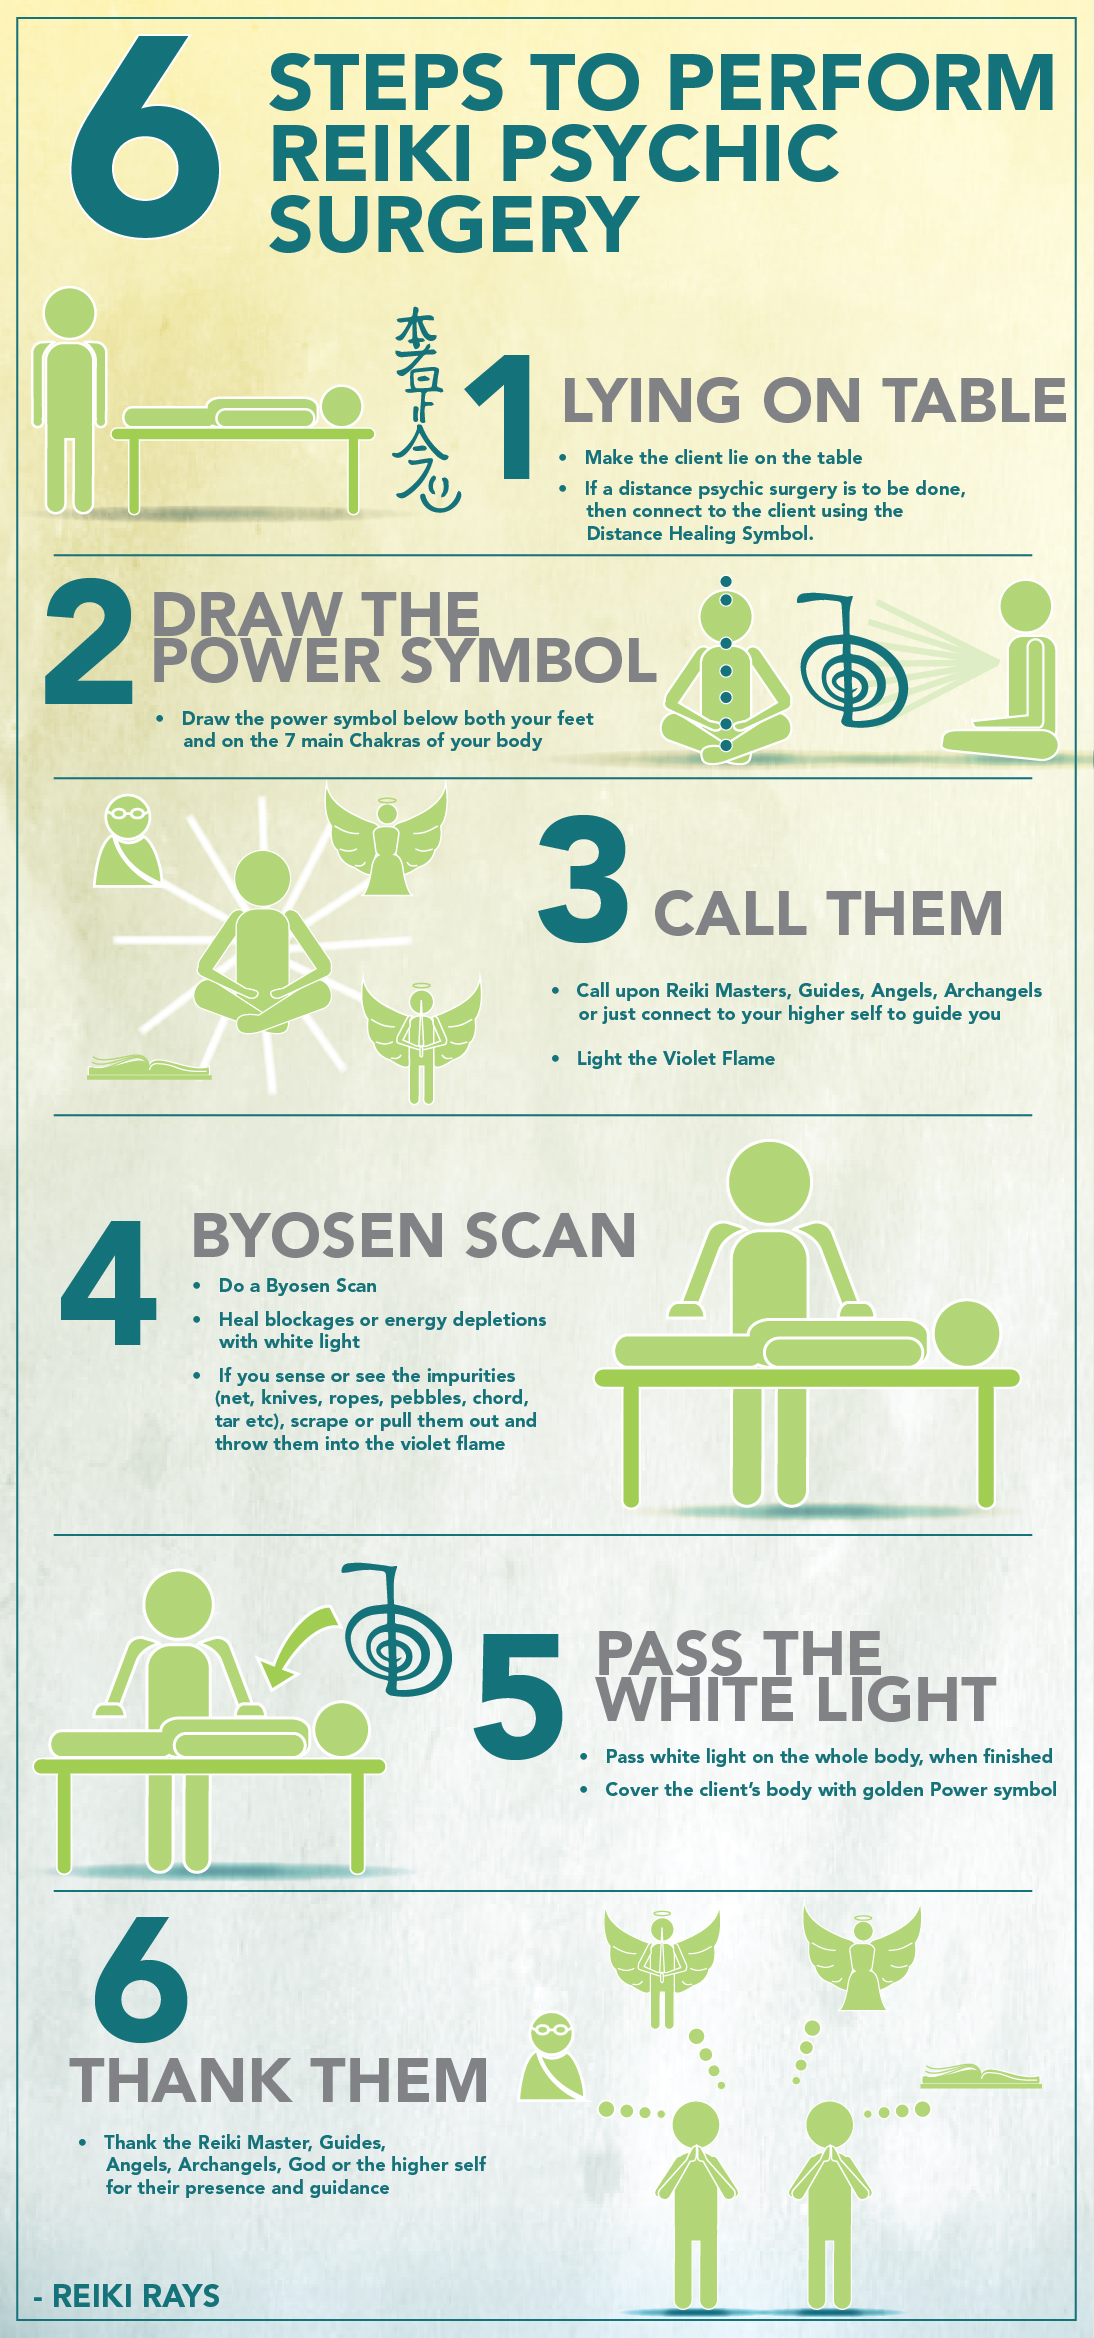 Infographic 6 Steps To Perform Reiki Psychic Surgery Reiki Rays